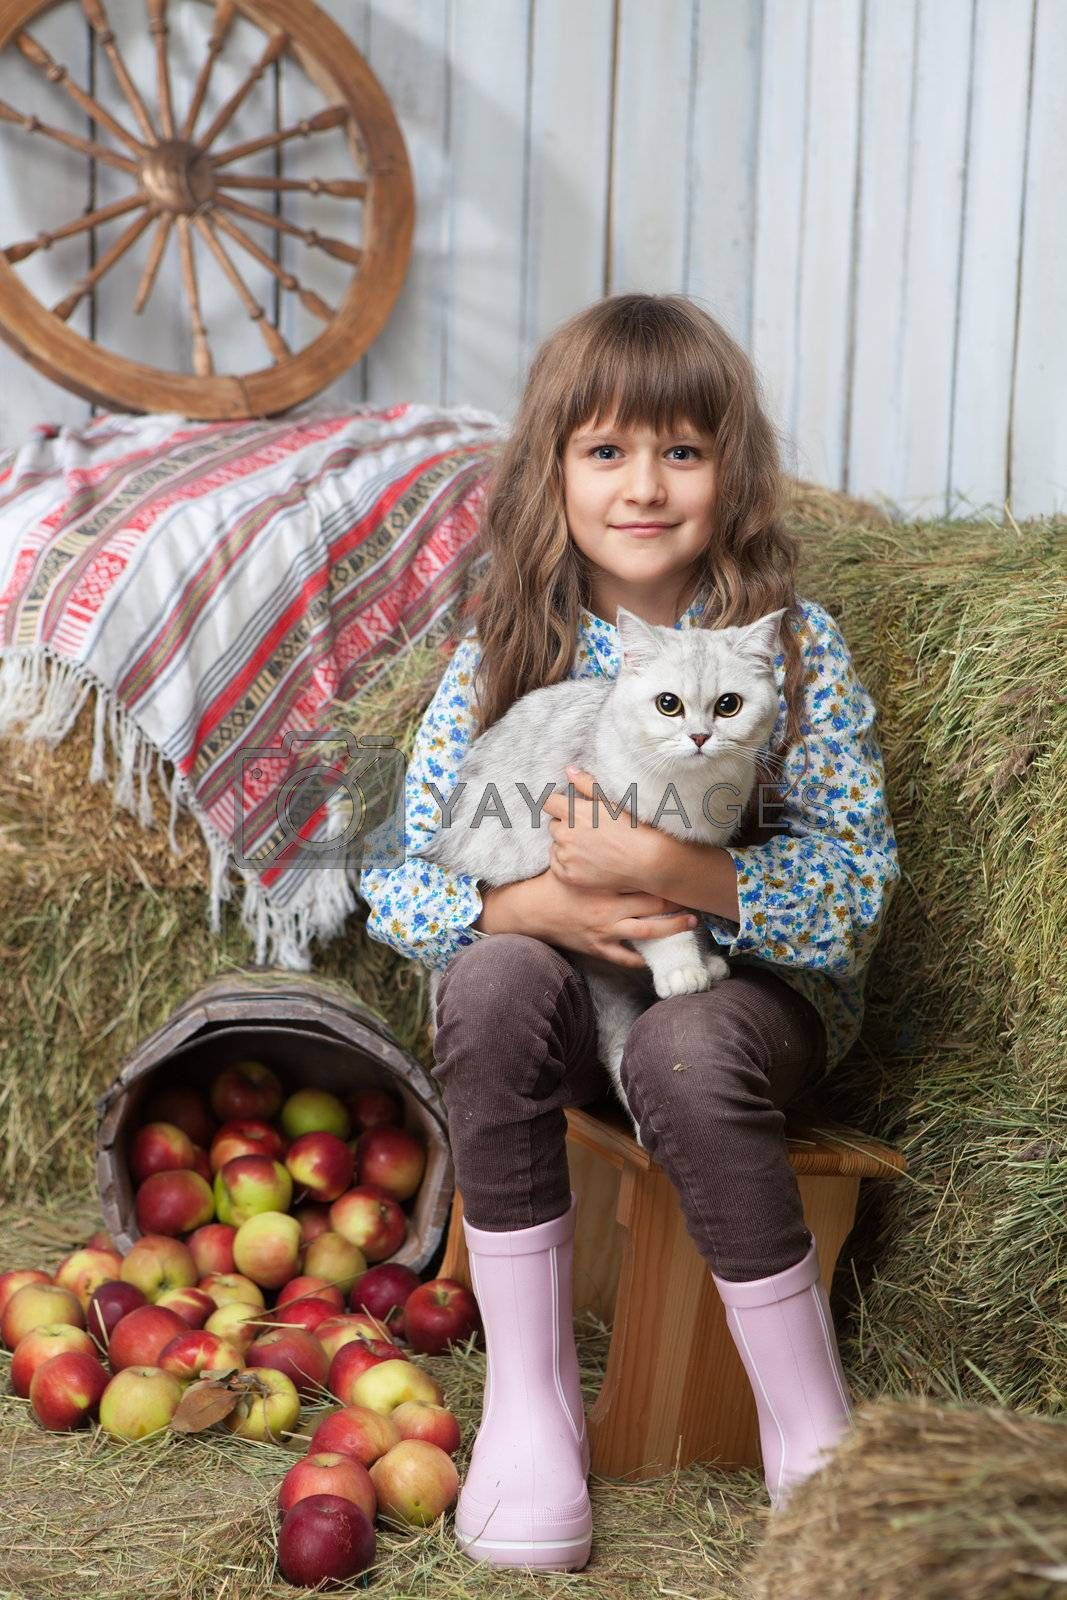 Portrait of friendly little blond girl villager sitting with white cat on hands near stacks of hay, pail of apples in wooden hayloft